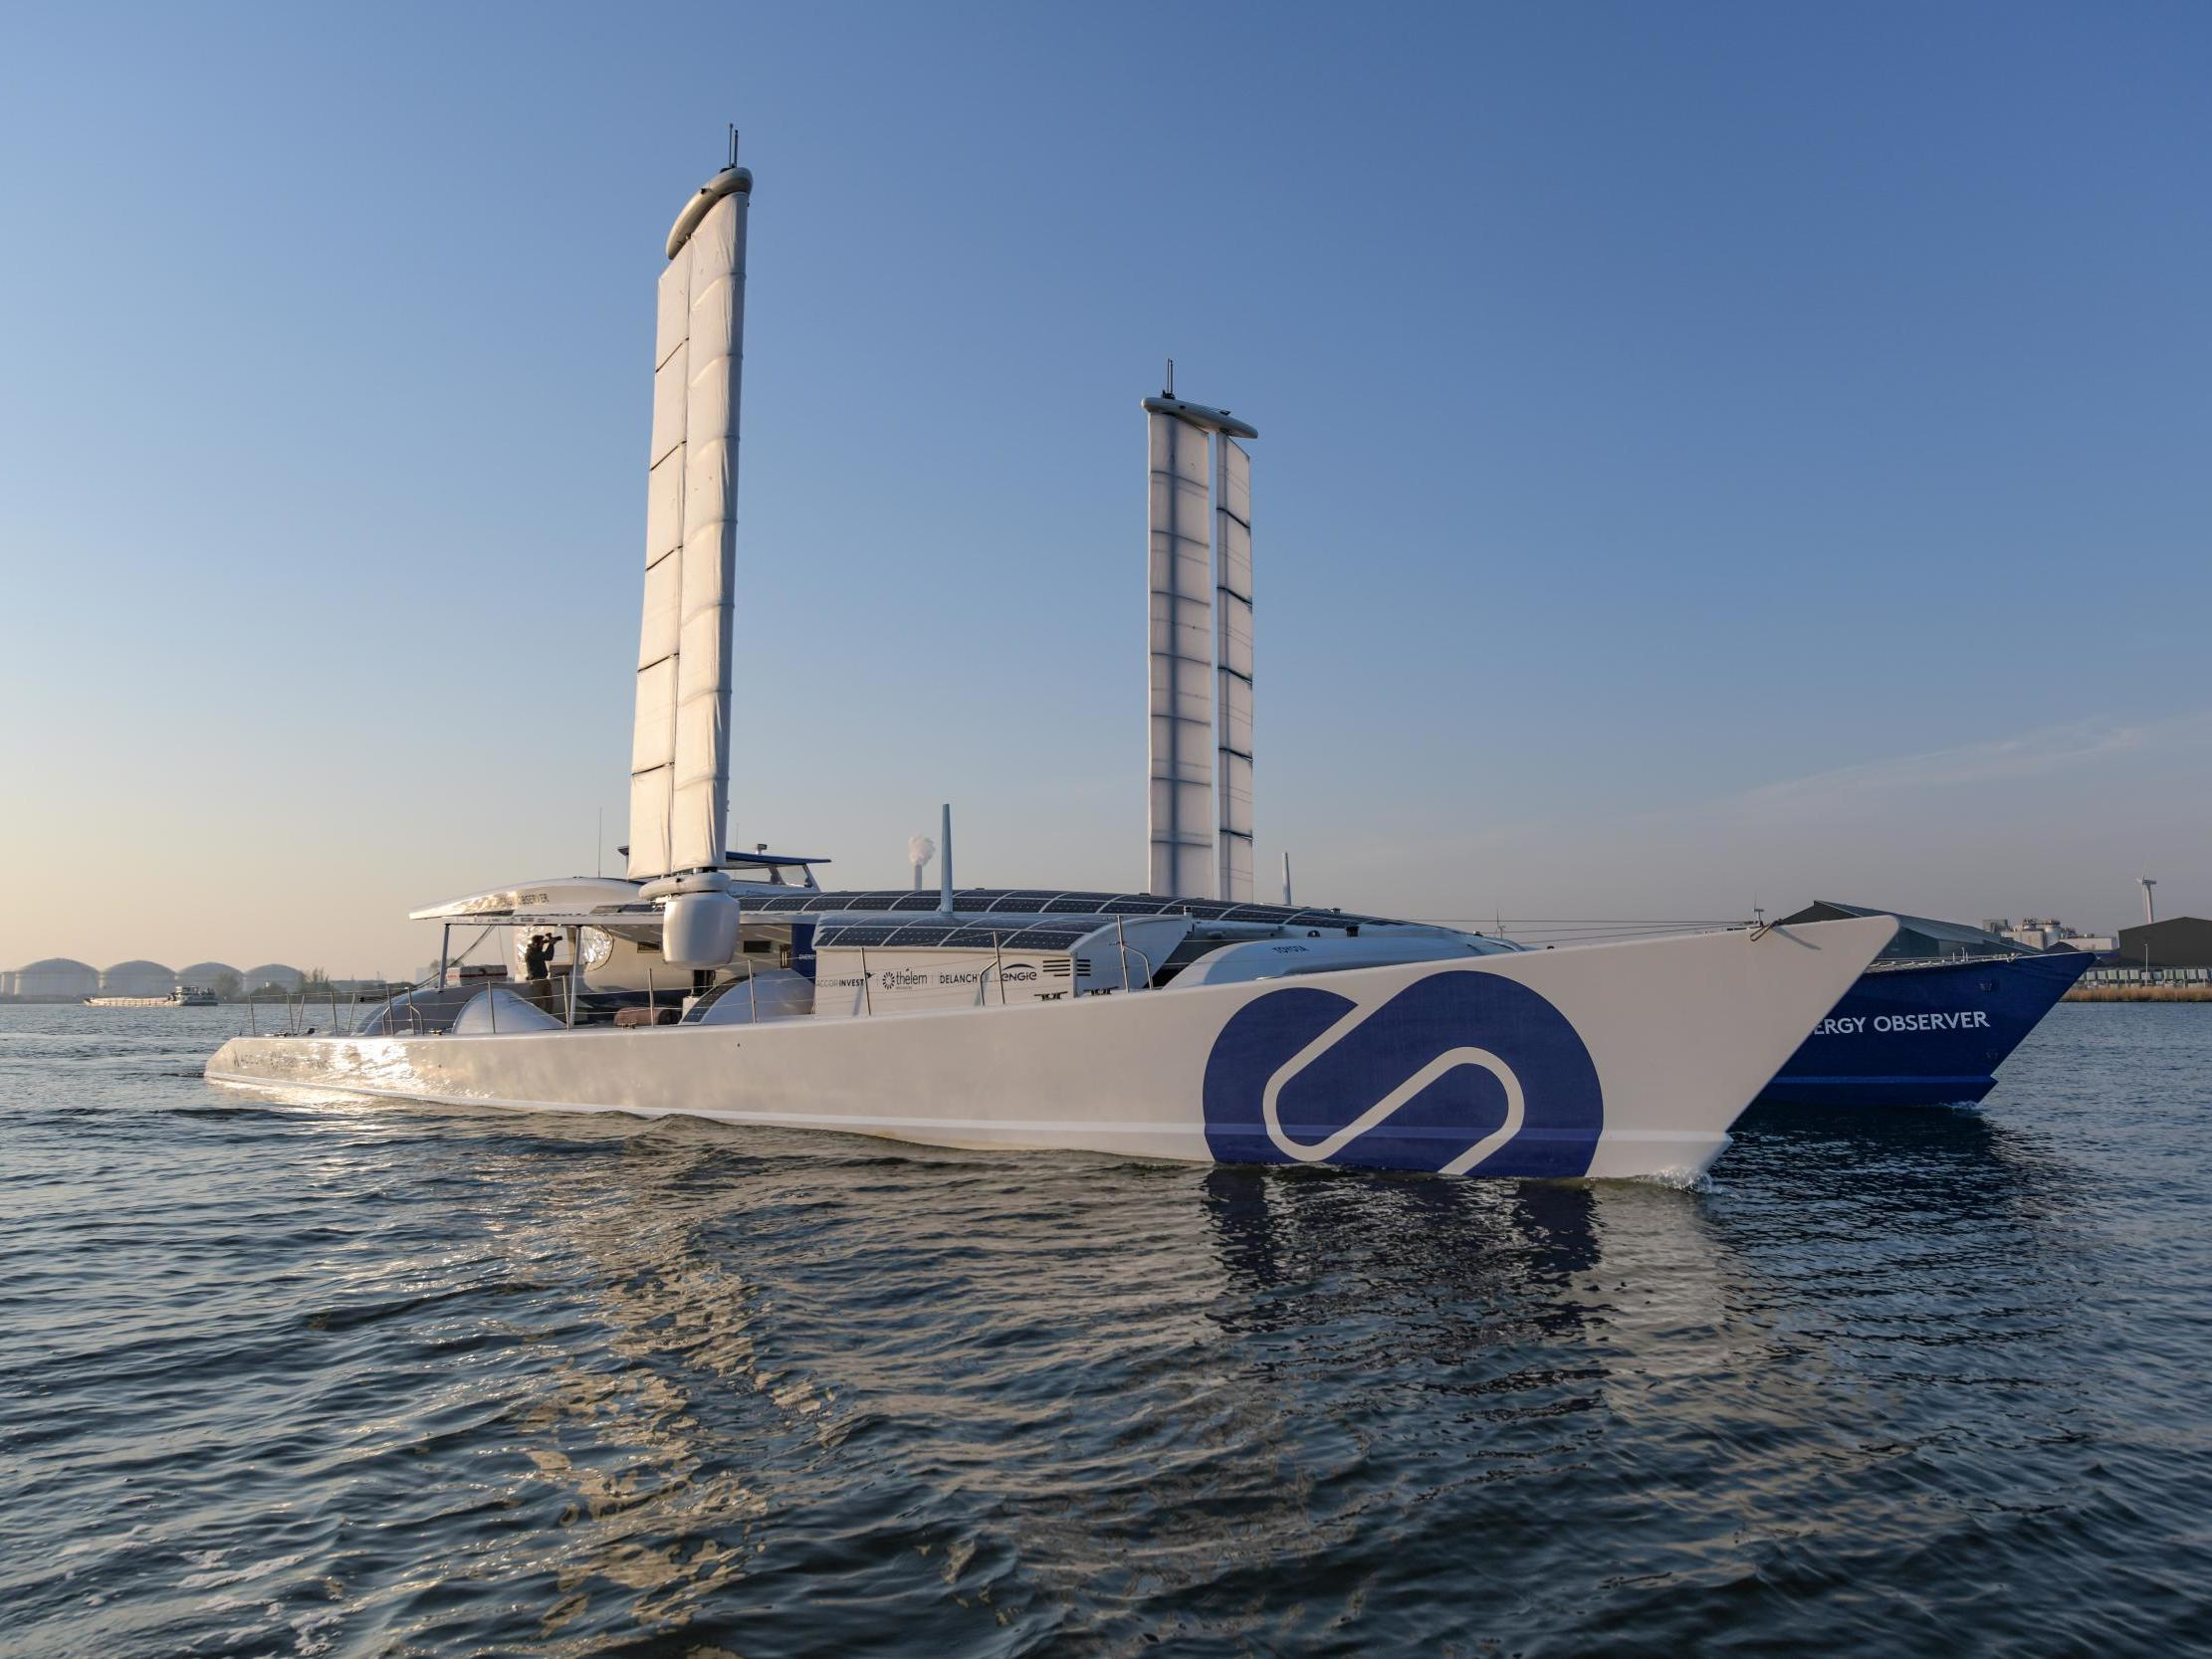 World's first hydrogen-powered ship docks in London as part of zero-emissions global tour